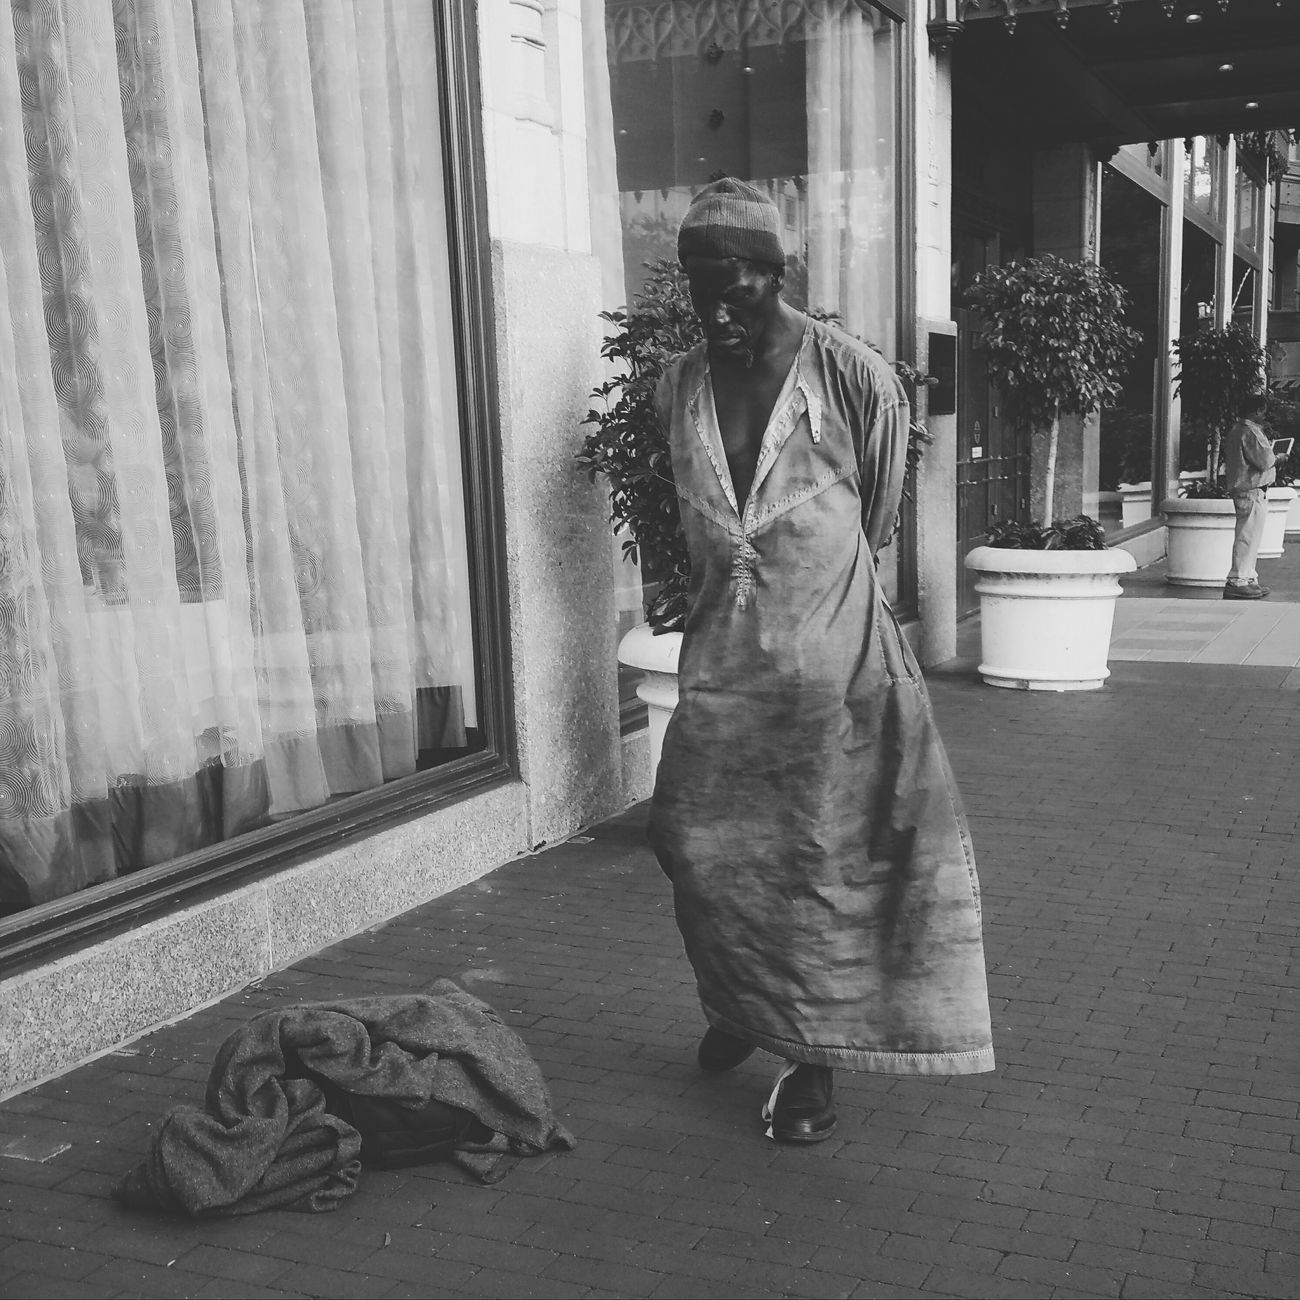 Street Photography Droidography Lifeography Streetphoto_bw